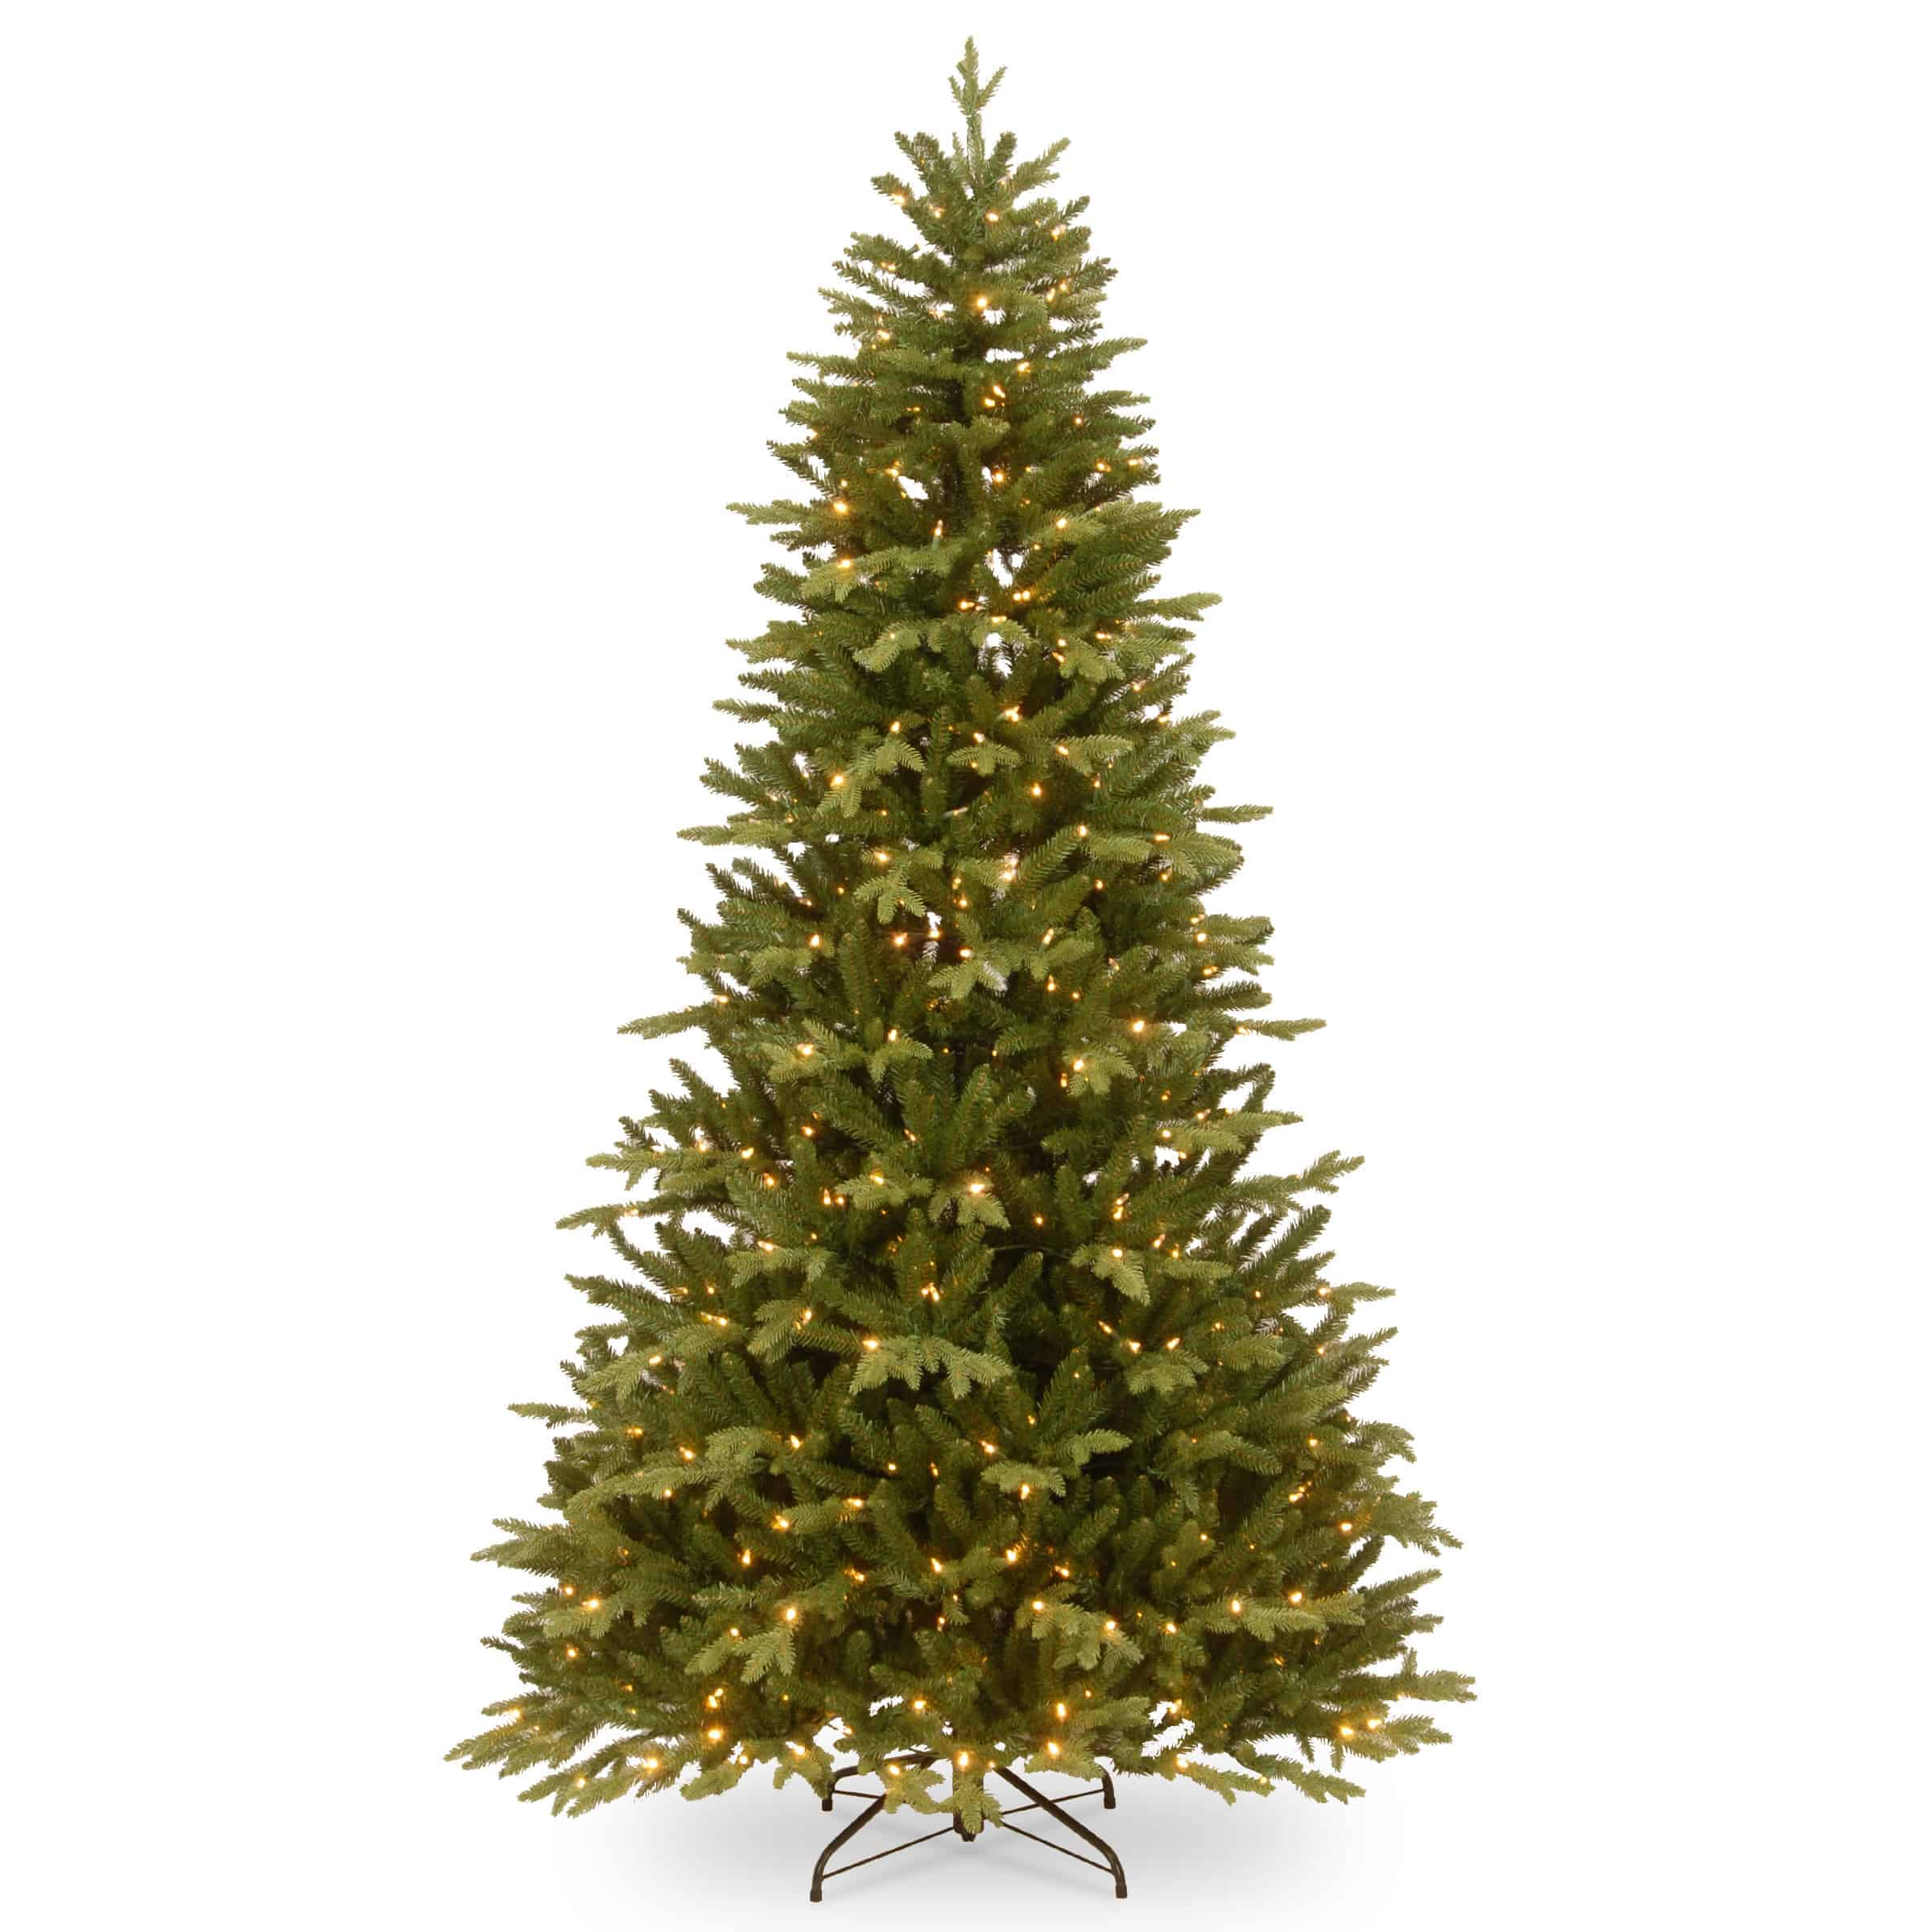 Artificial Christmas Tree Clearance.7 5ft Burlington Spruce Pre Lit Artificial Christmas Tree Online Only